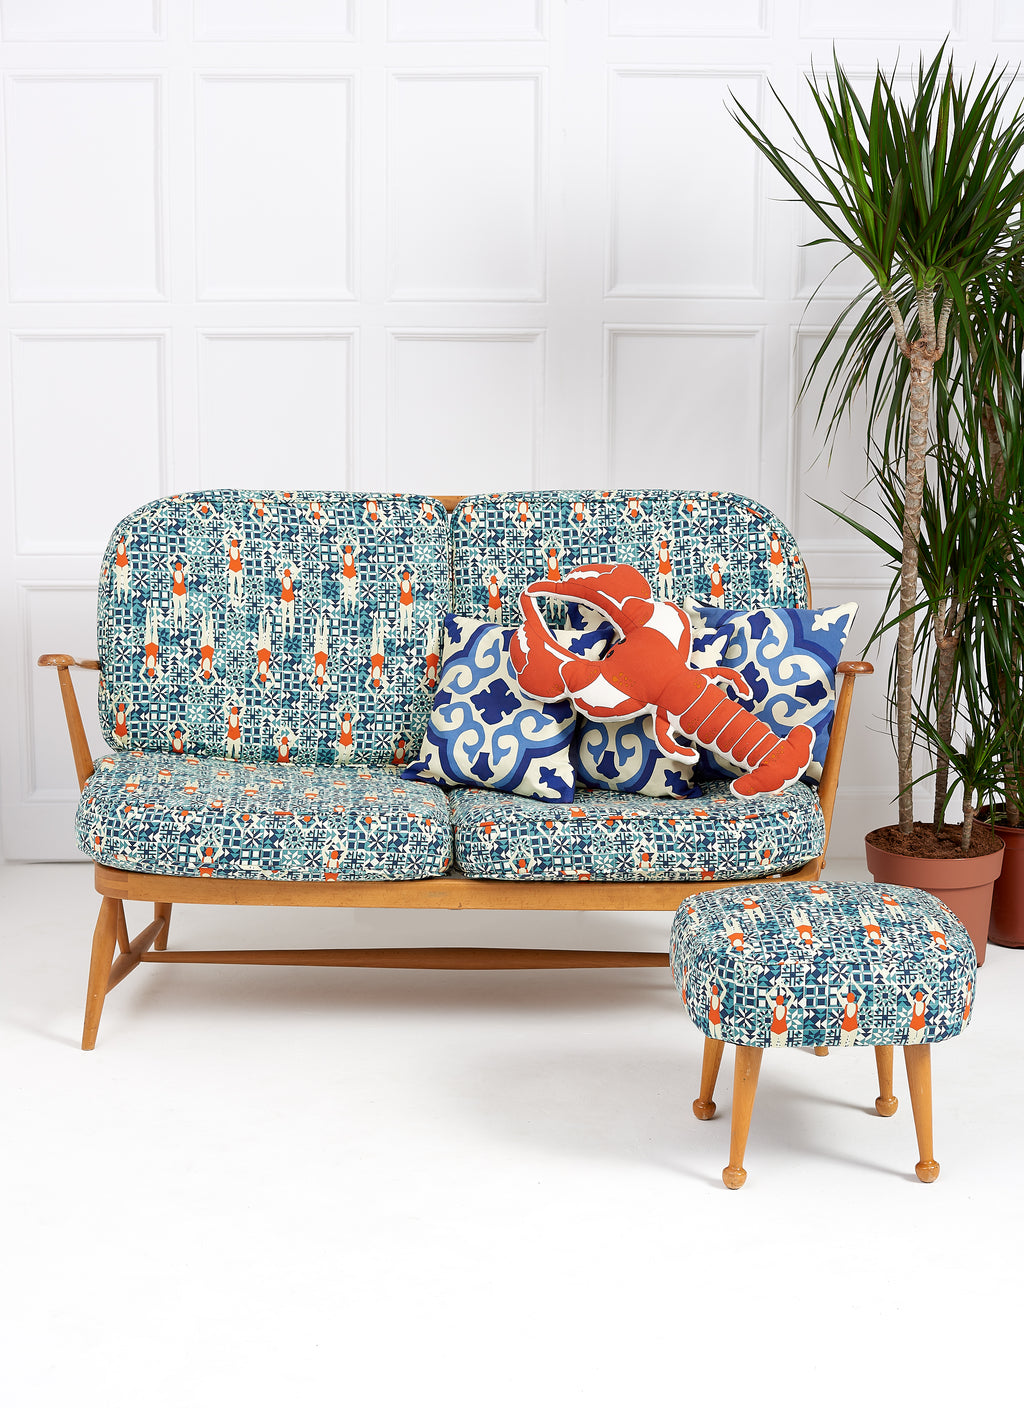 Lobster cushion set